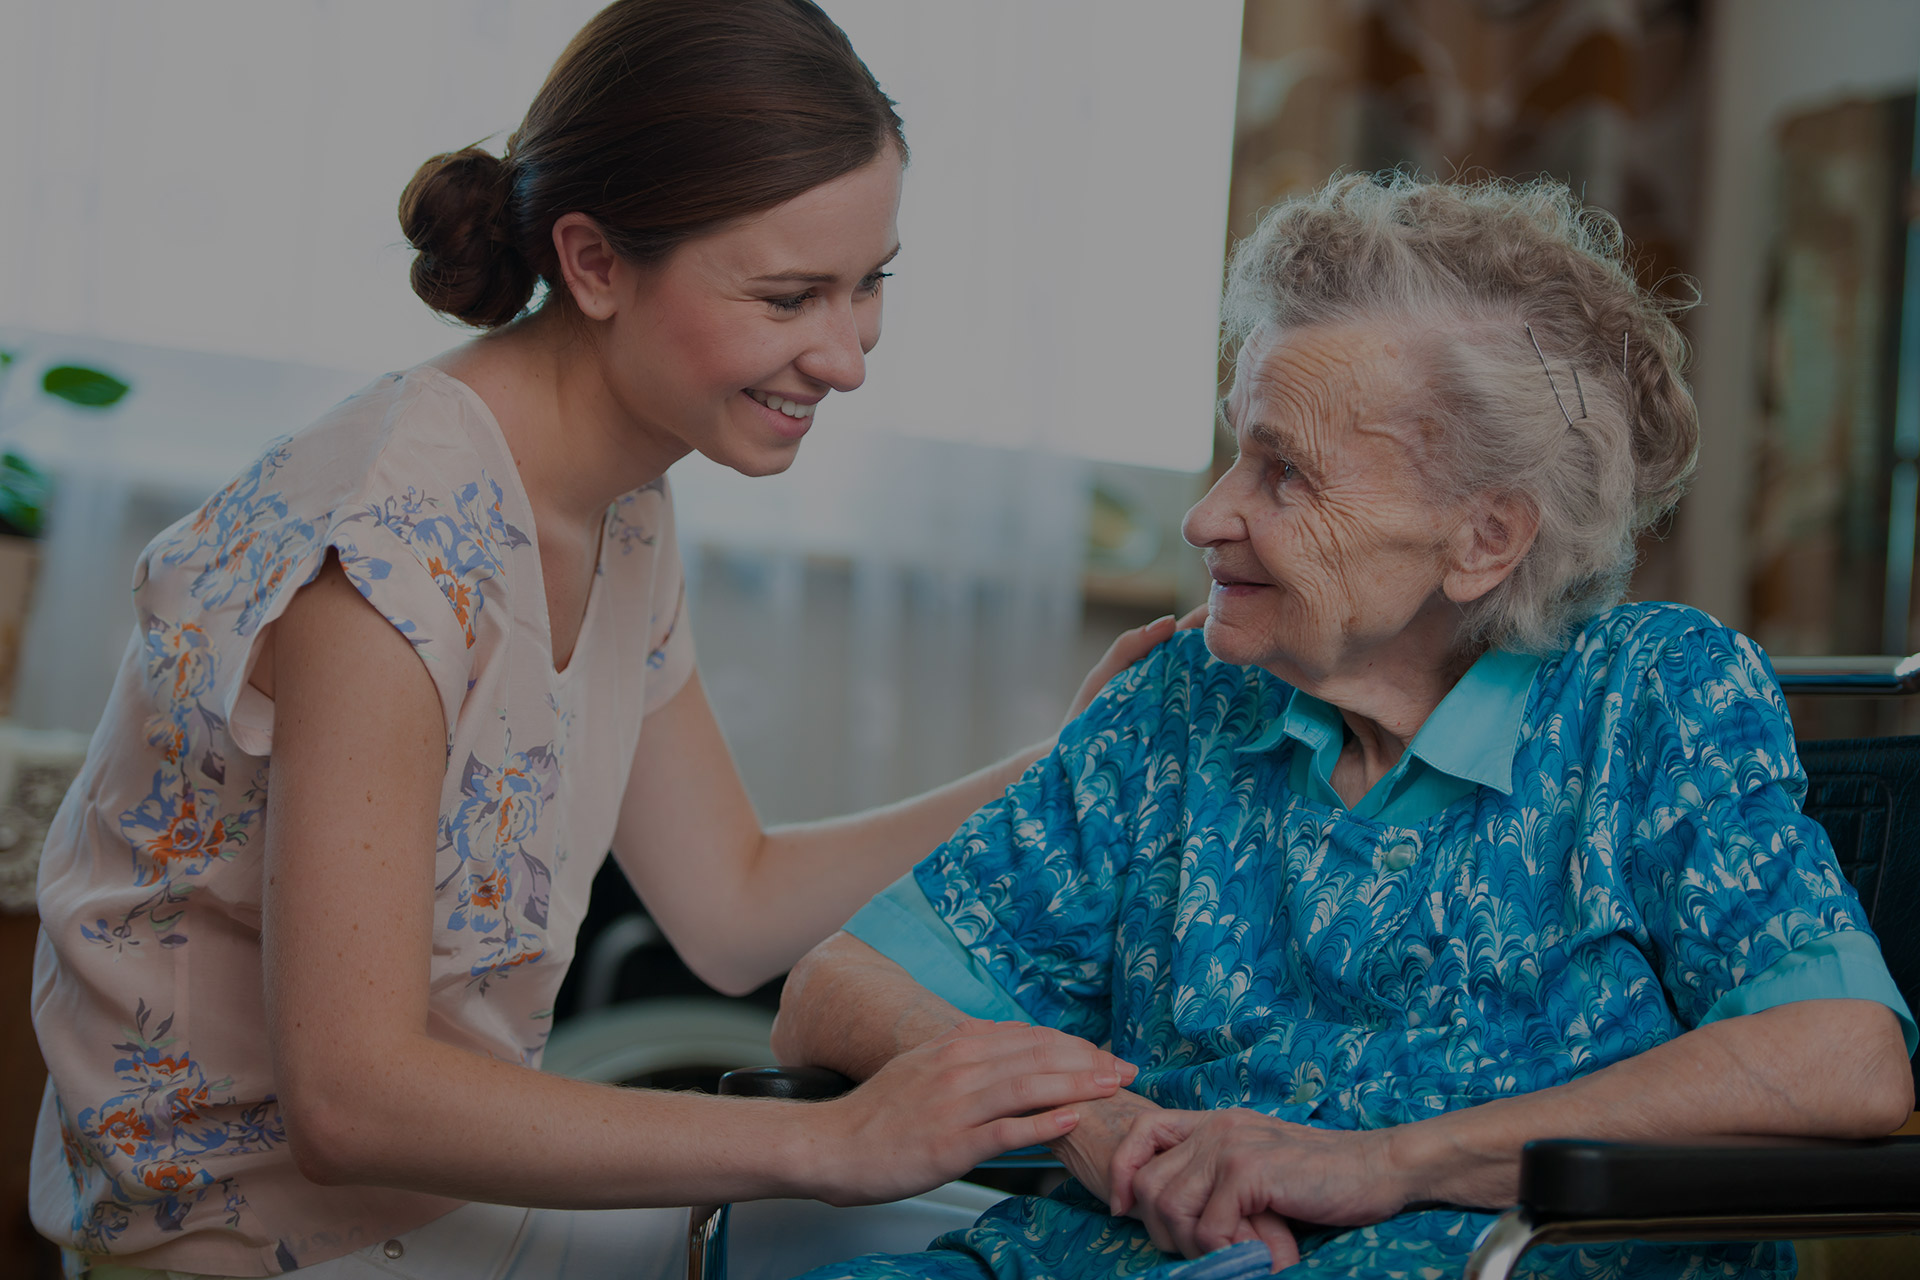 View our other care homes